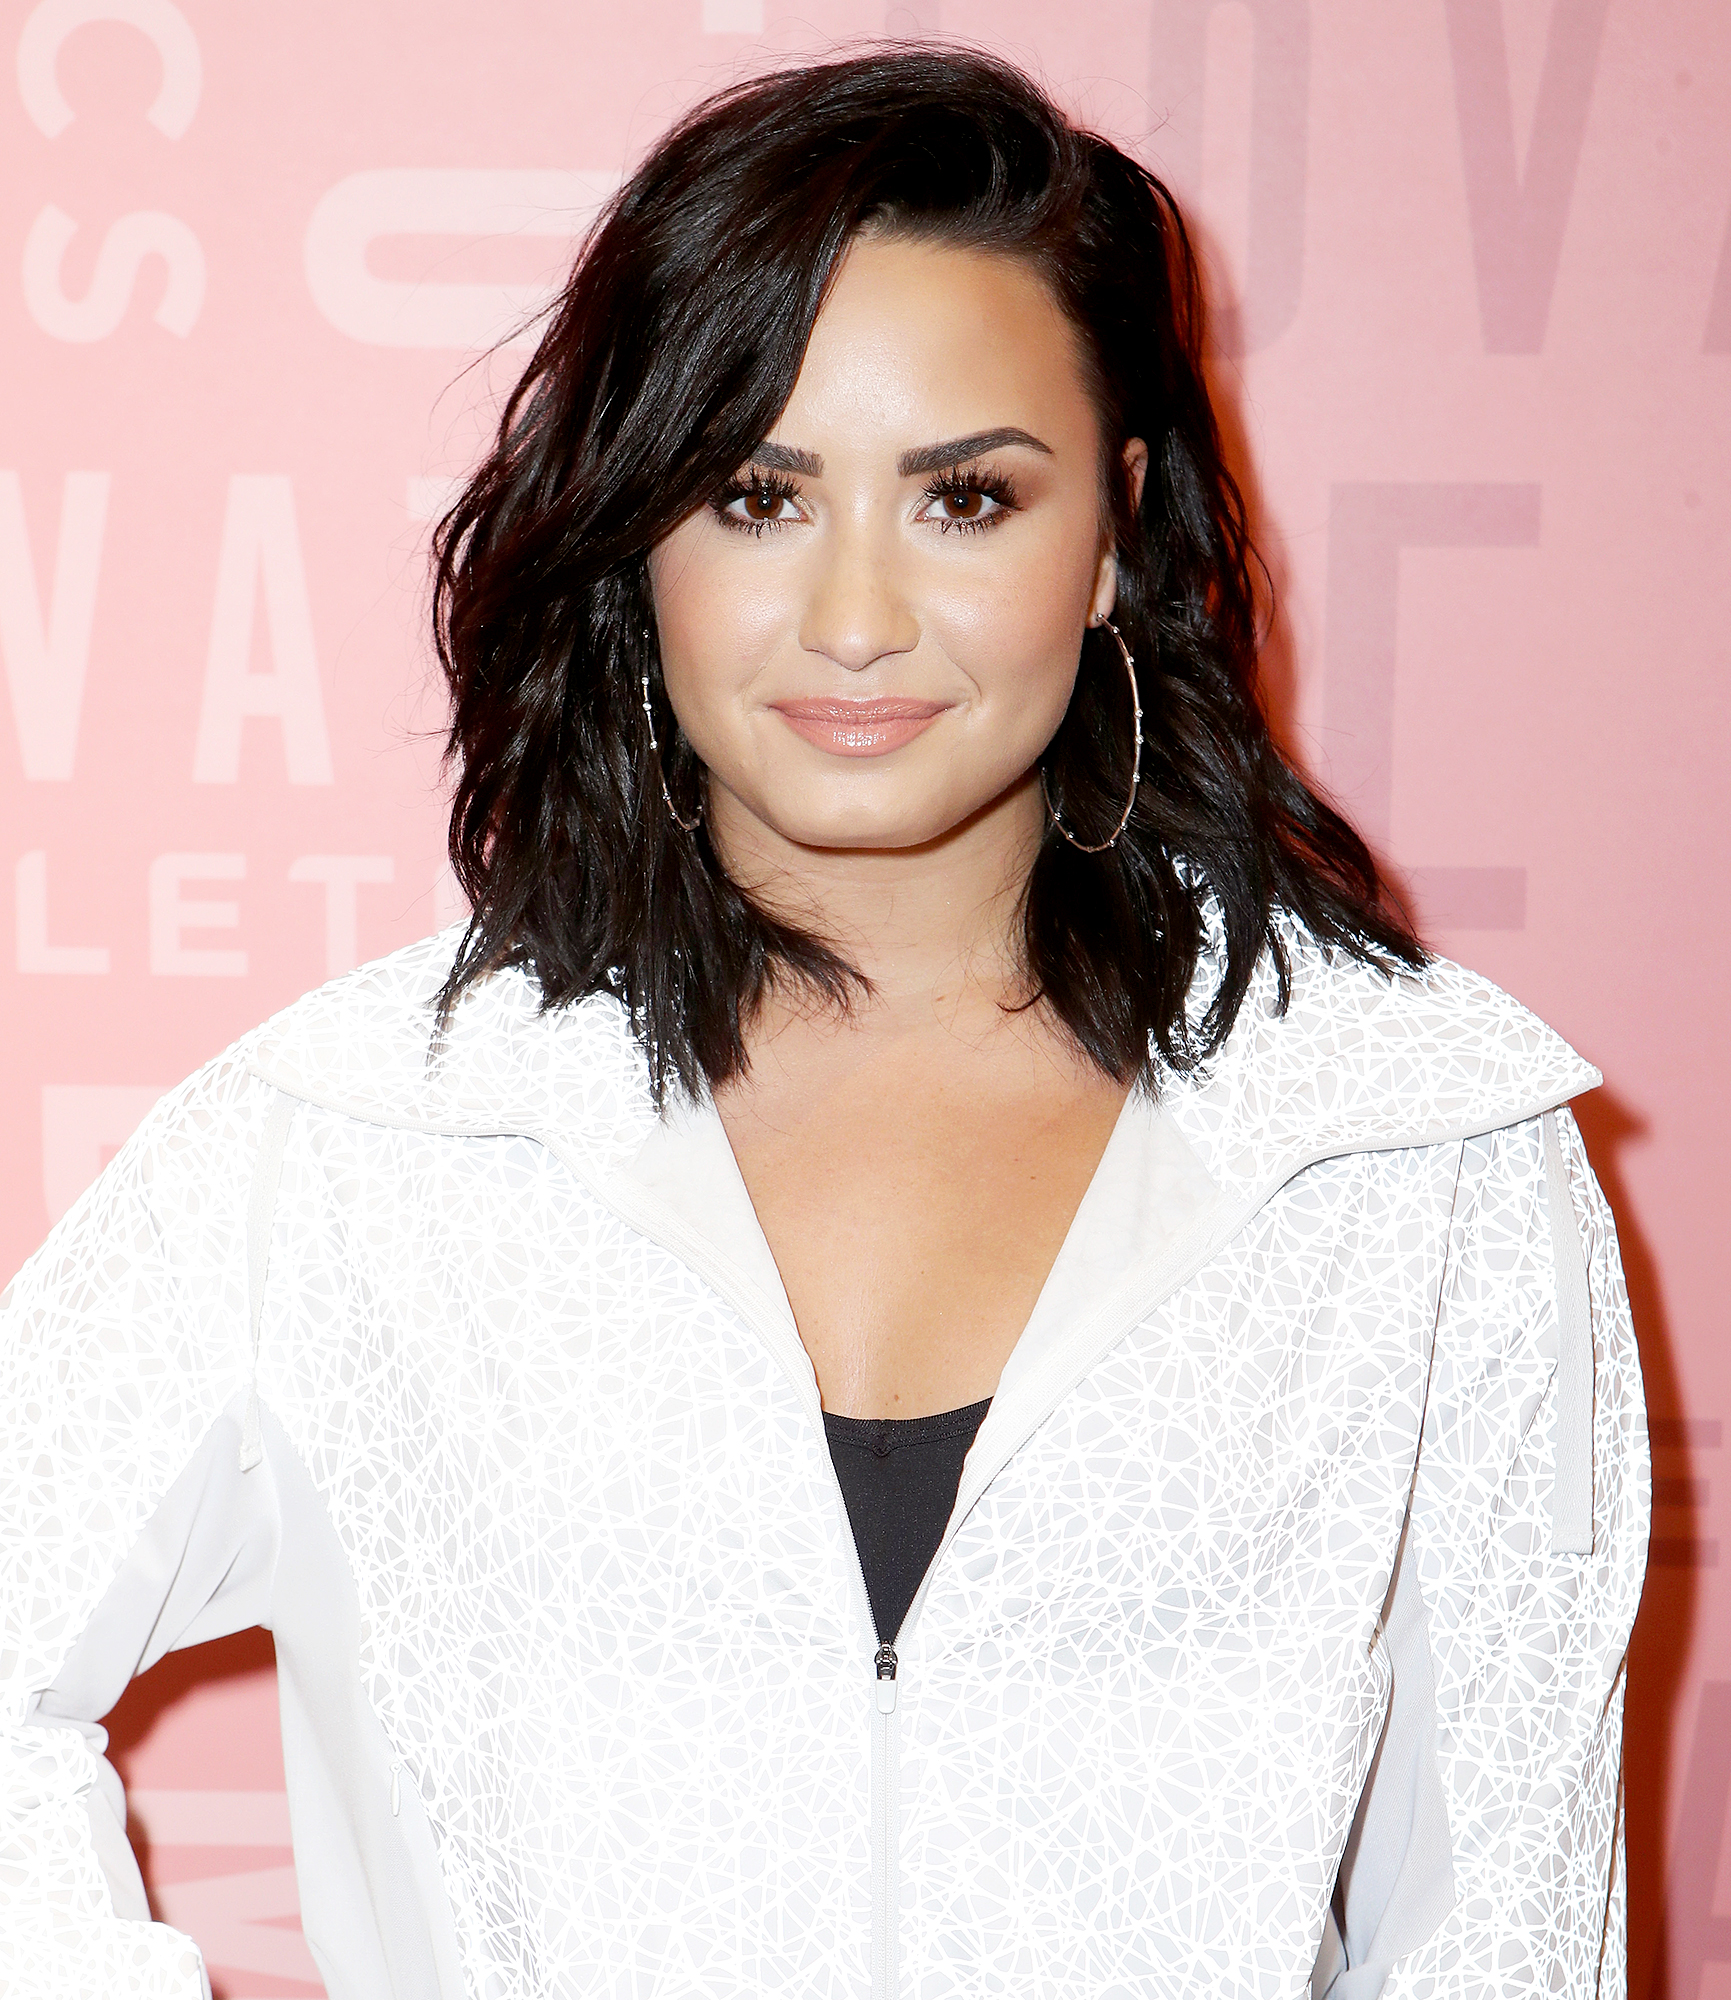 demi-lovato-sober-meme - Demi Lovato attends the Demi Lovato visits Fabletics at The Village at Westfield Topanga on May 18, 2018 in Woodland Hills, California.